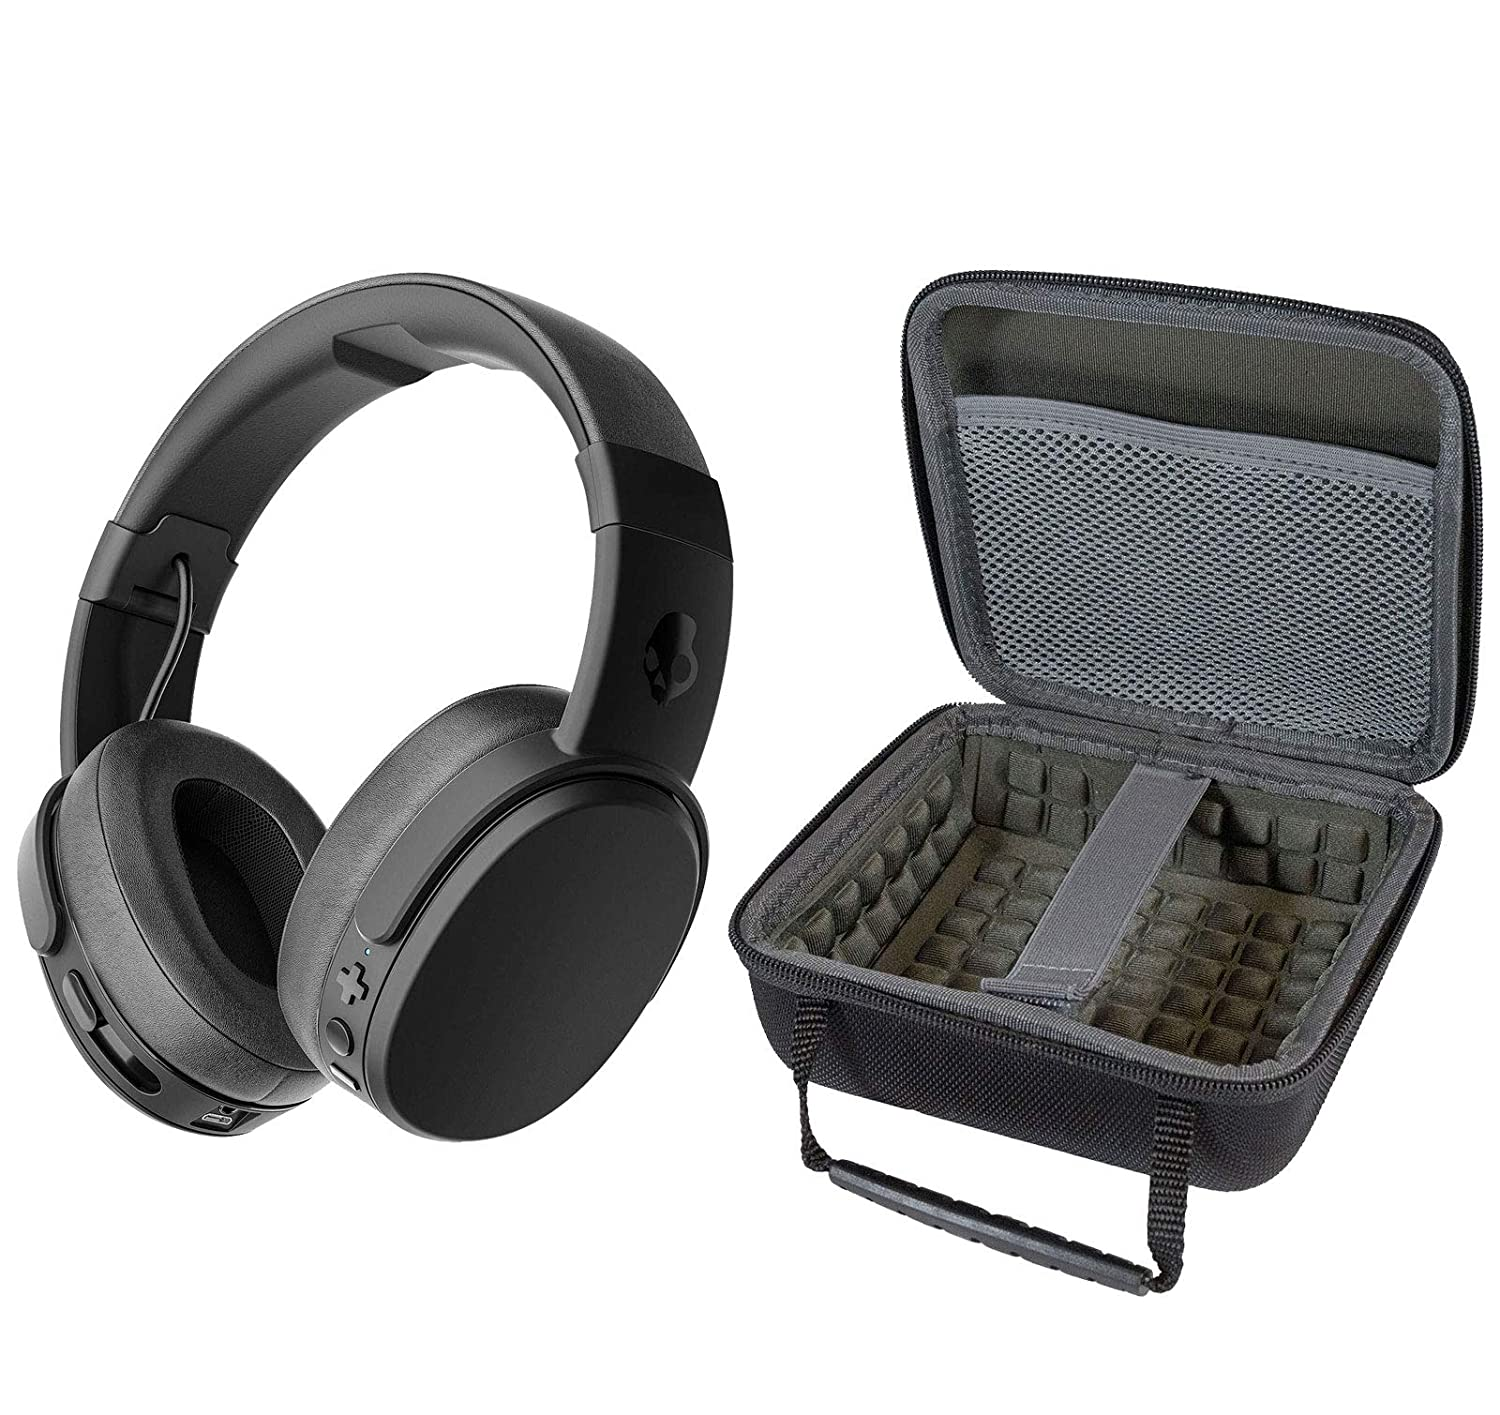 Skullcandy Crusher Foldable Noise Isolating Over-Ear Wireless Bluetooth Immersive Headphone Bundle with Portable Hardshell Case - Black/Coral